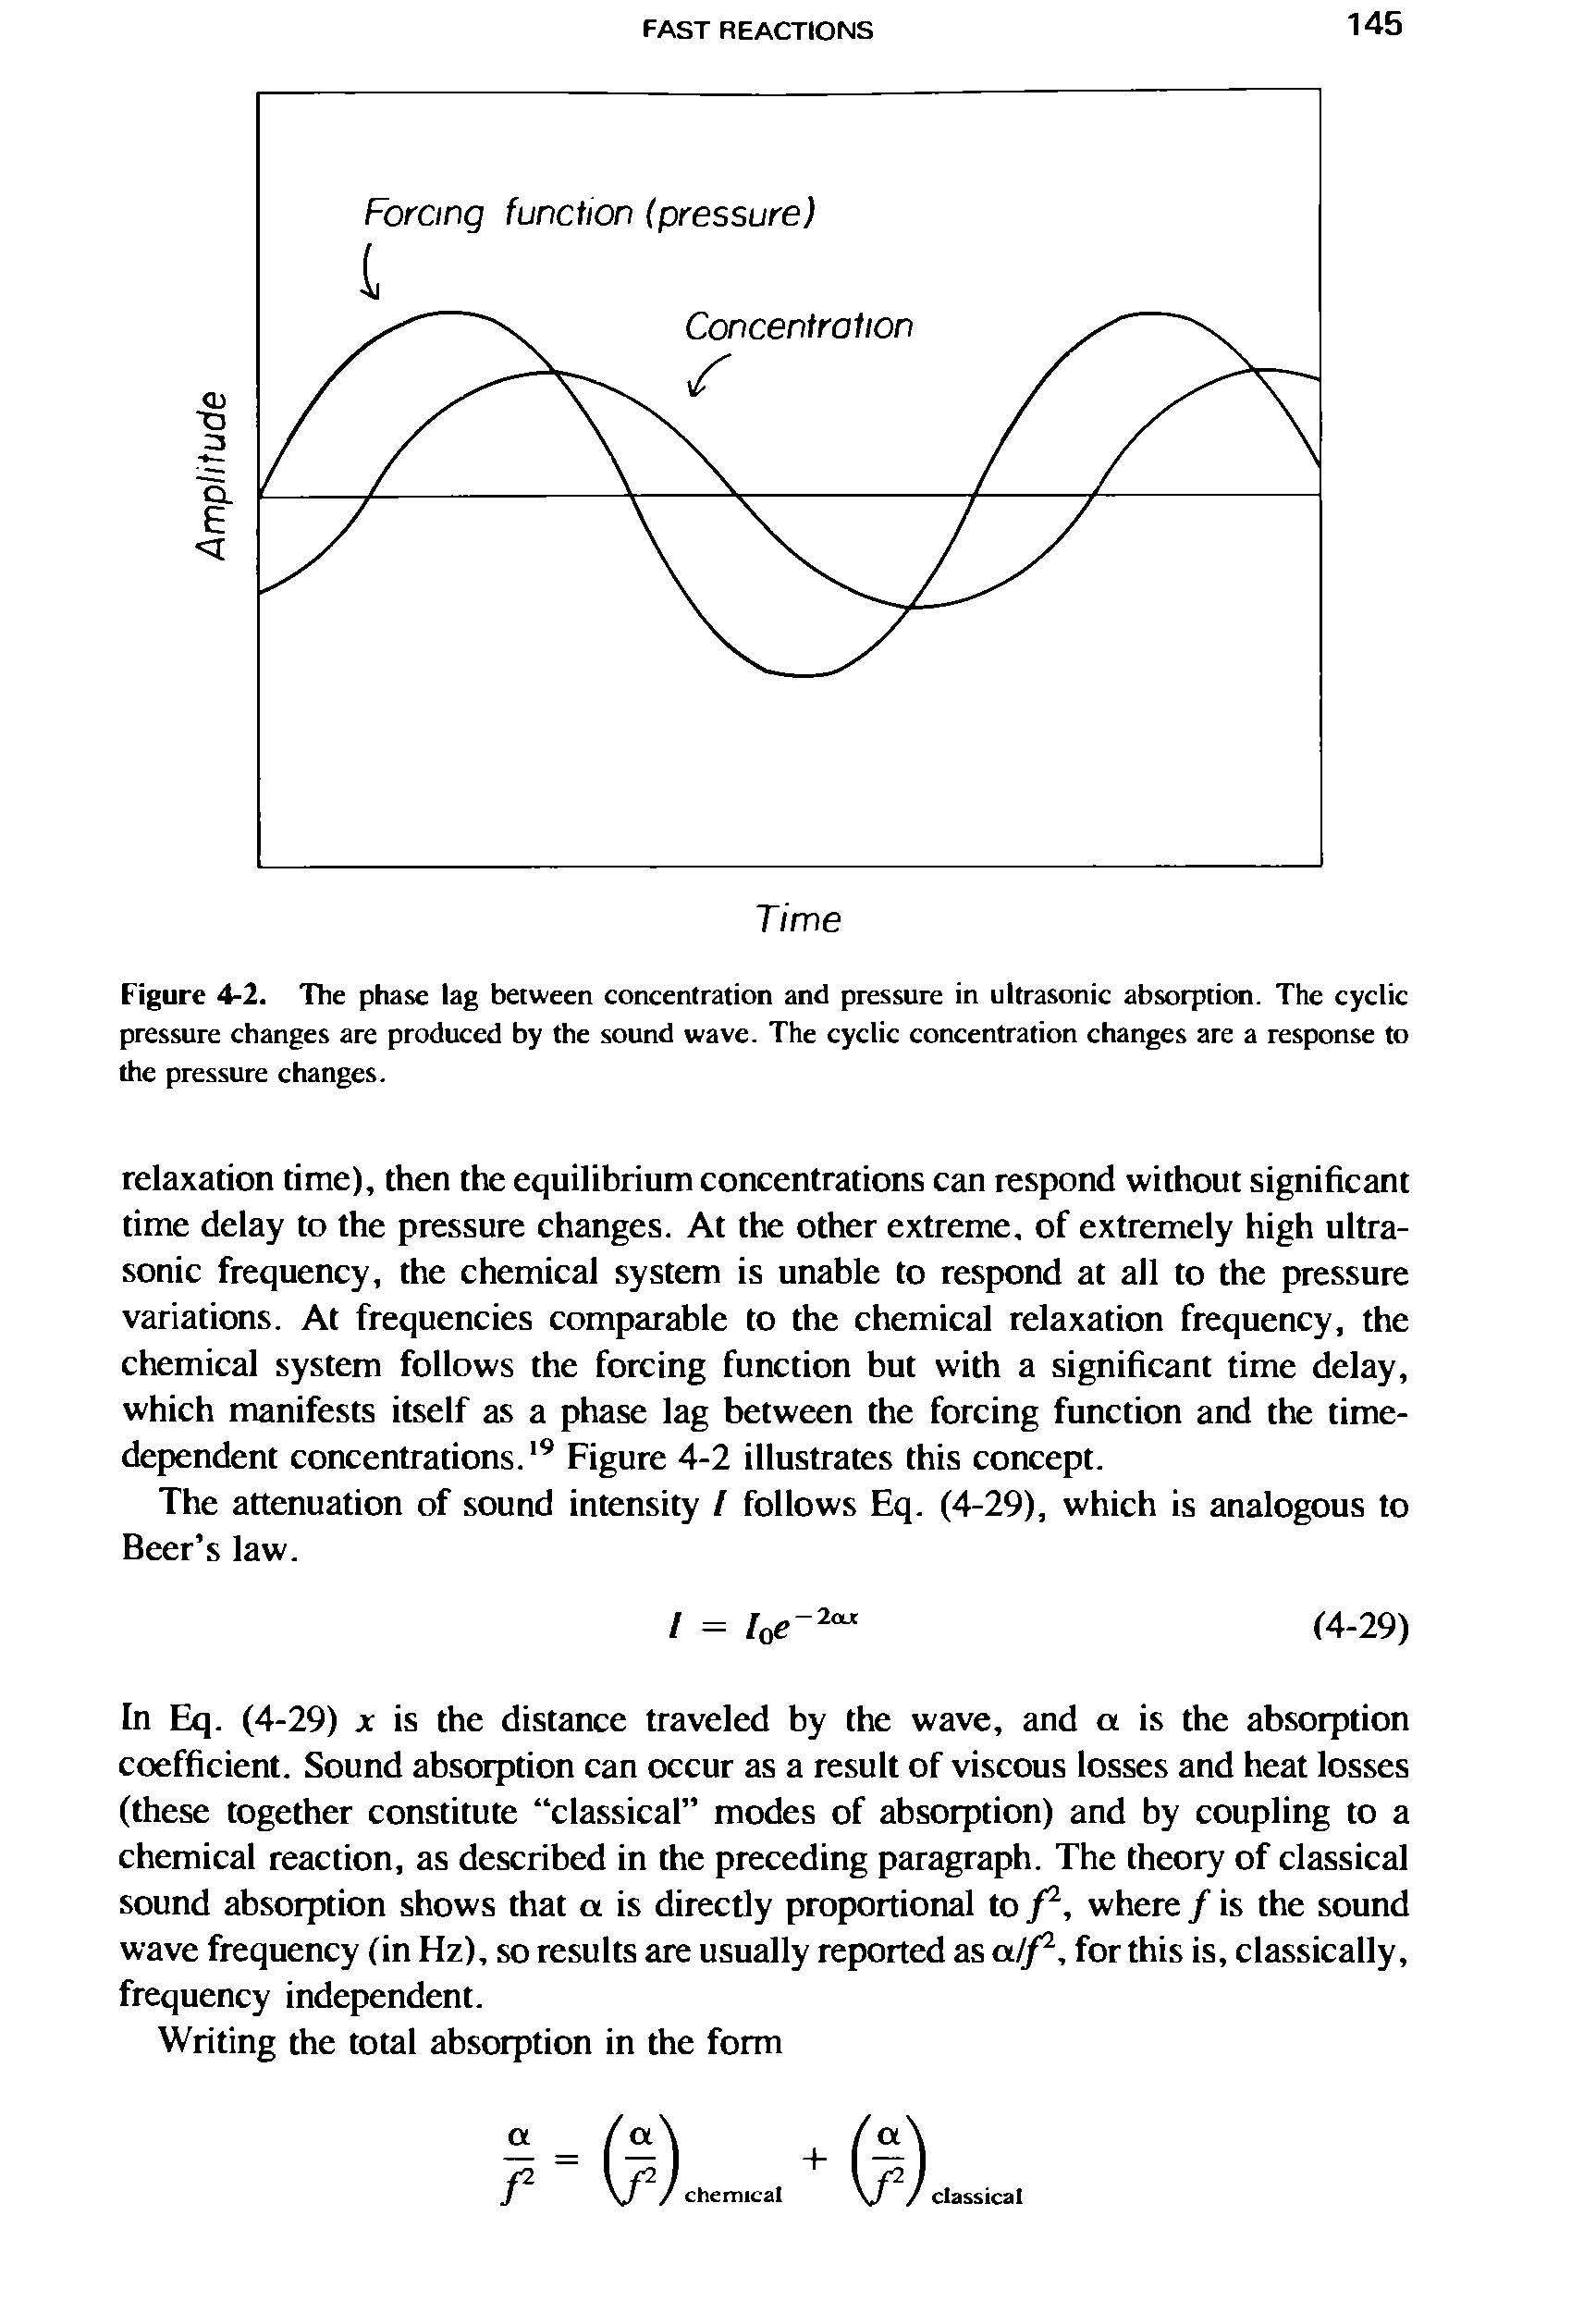 "Figure 4-2. The phase lag between concentration and pressure in ultrasonic absorption. The cyclic <a href=""/info/pressure_change"">pressure changes</a> are produced by the <a href=""/info/sound_waves"">sound wave</a>. The <a href=""/info/cyclic_amp_concentration"">cyclic concentration</a> changes are a response to the pressure changes."